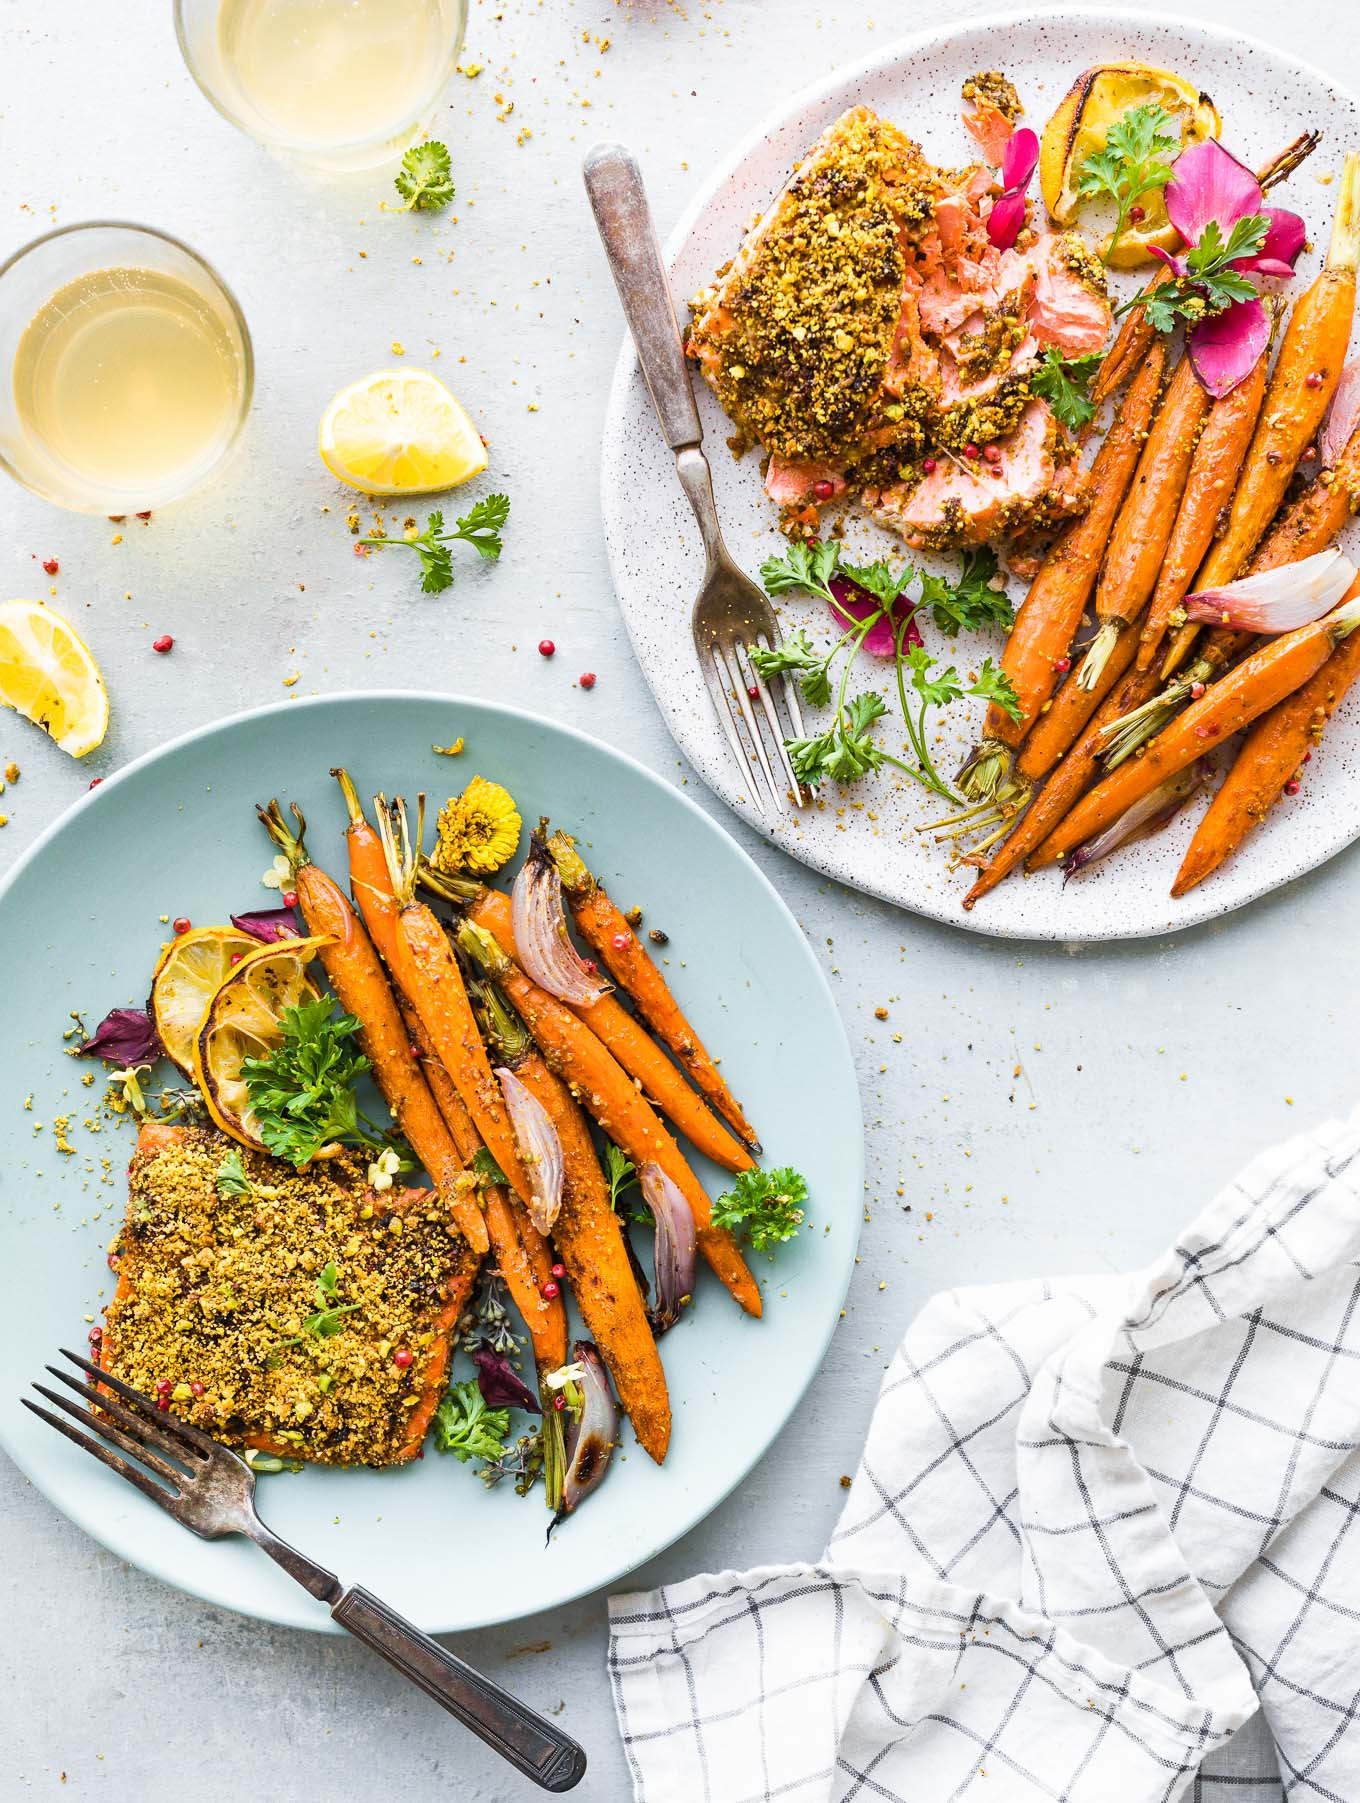 plates of gluten free pistachio crusted salmon with glazed carrots